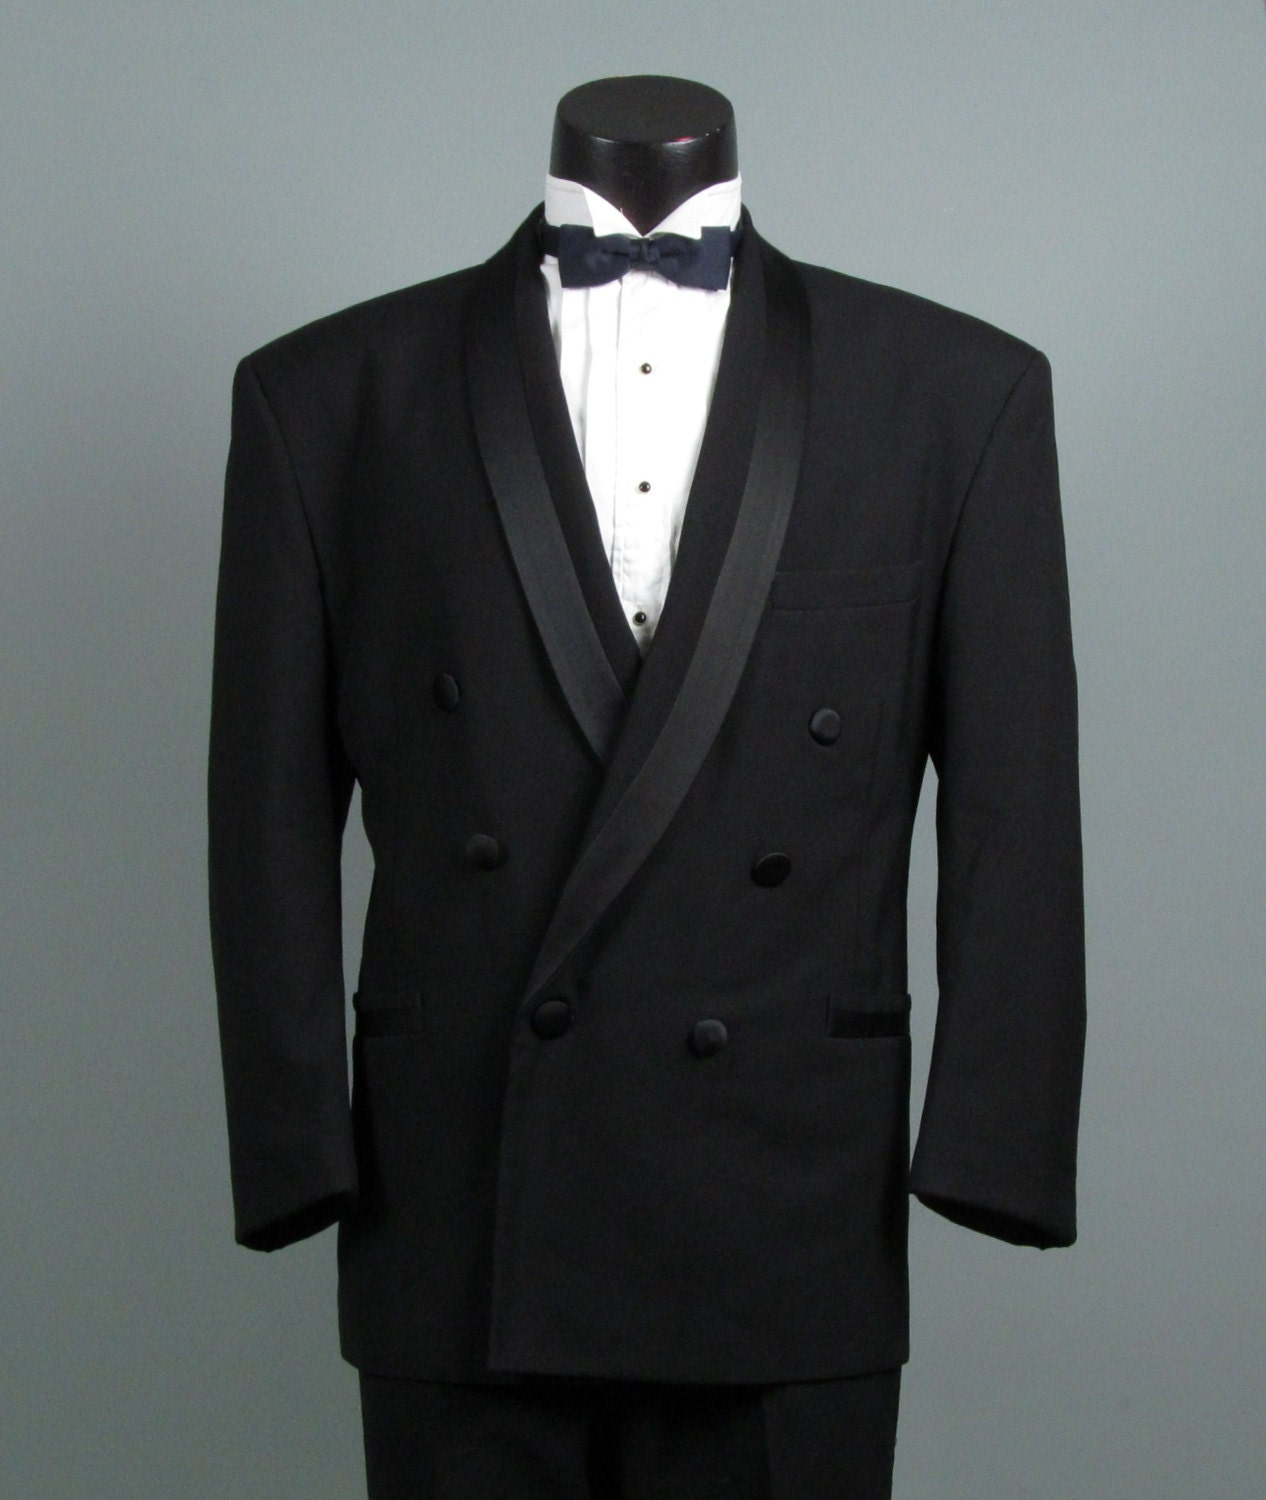 The white dinner jacket is an iconic look. Originally a warm weather alternative to the standard black tux, these days a white jacket tux keeps its cool in any climate.